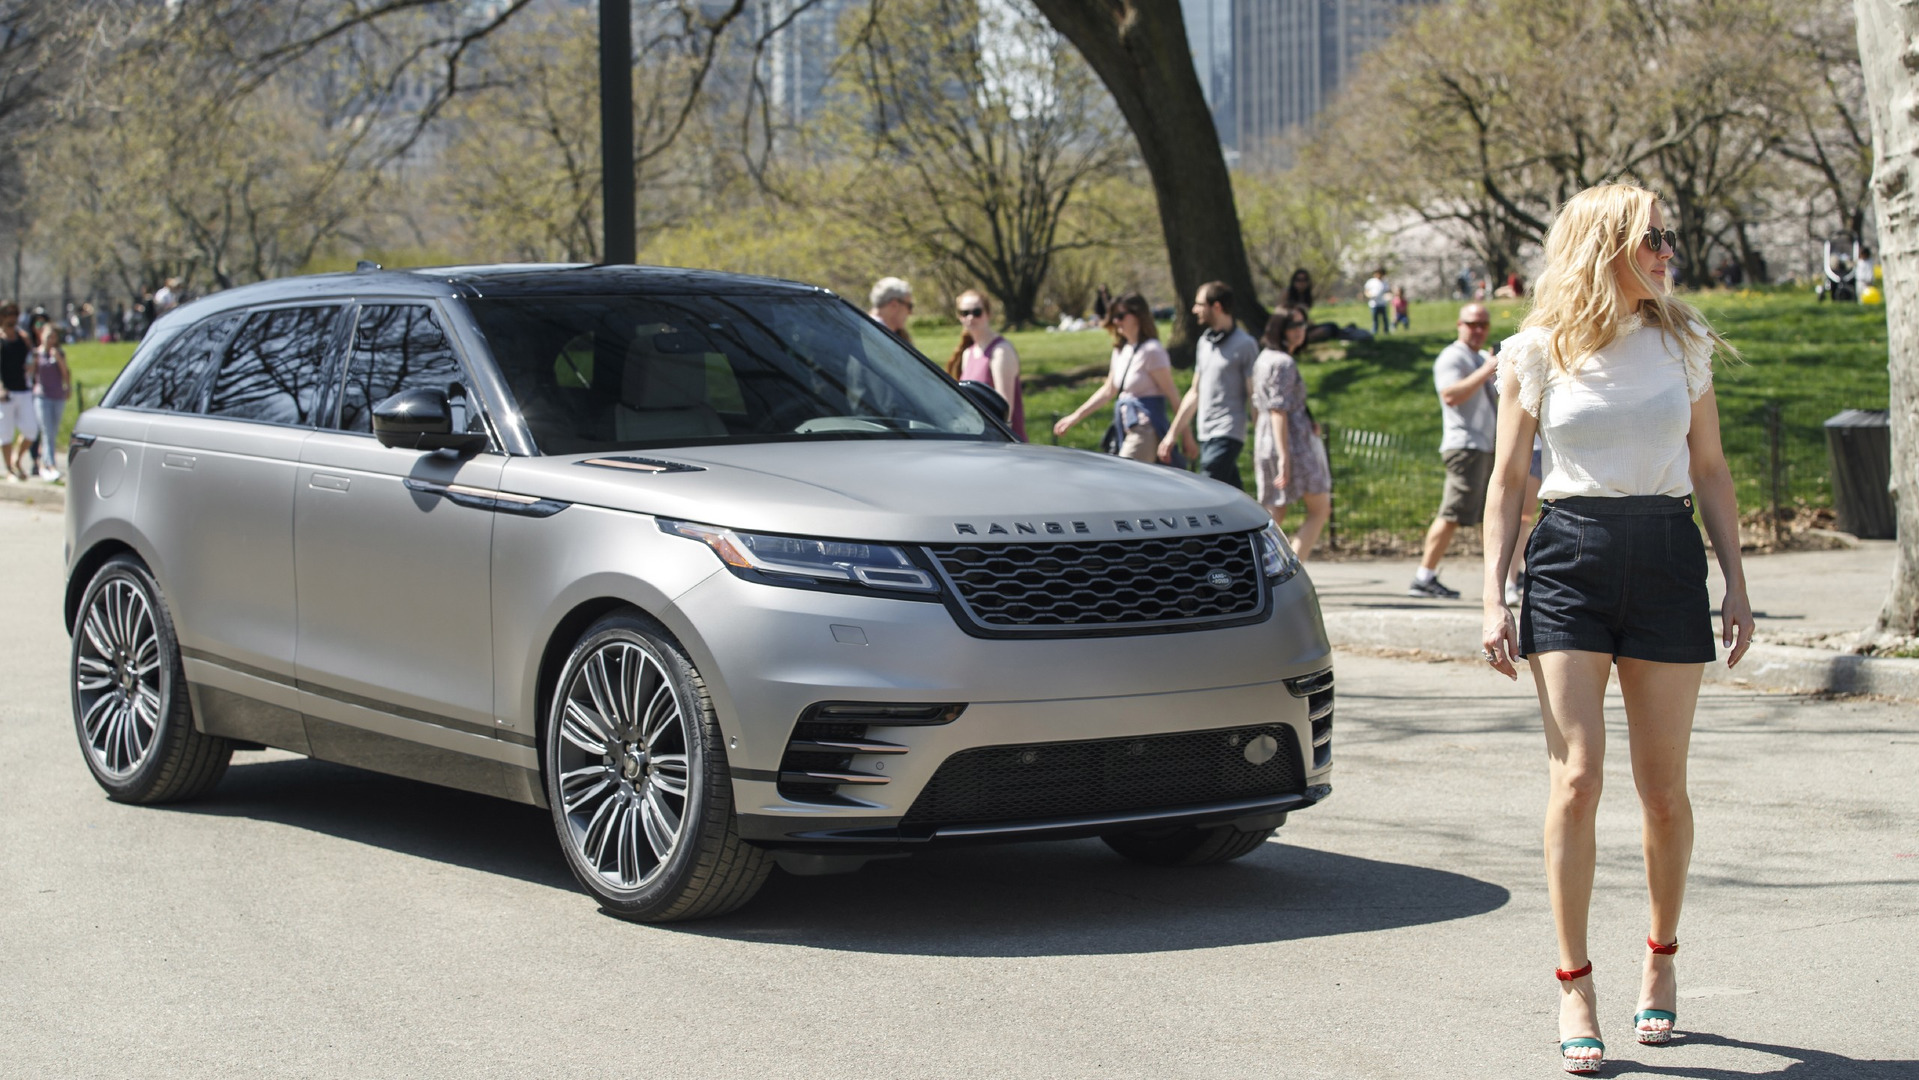 Range Rover Usa >> Range Rover Velar Makes U S Debut With Help From Ellie Goulding